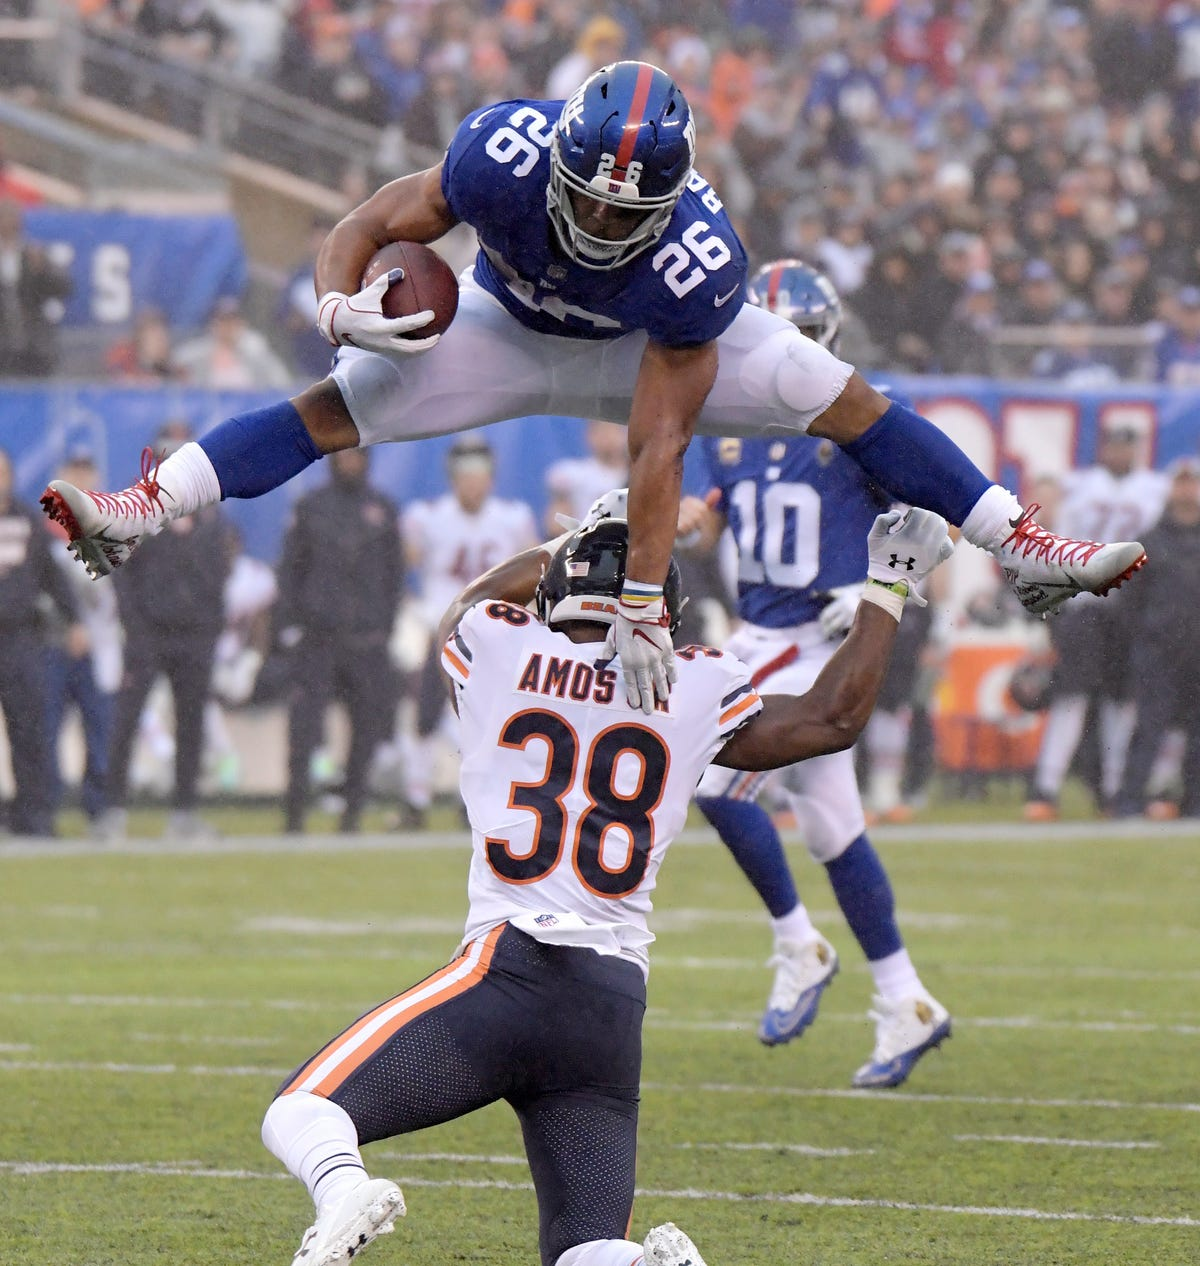 Saquon Barkley leaping to historic heights with NY Giants